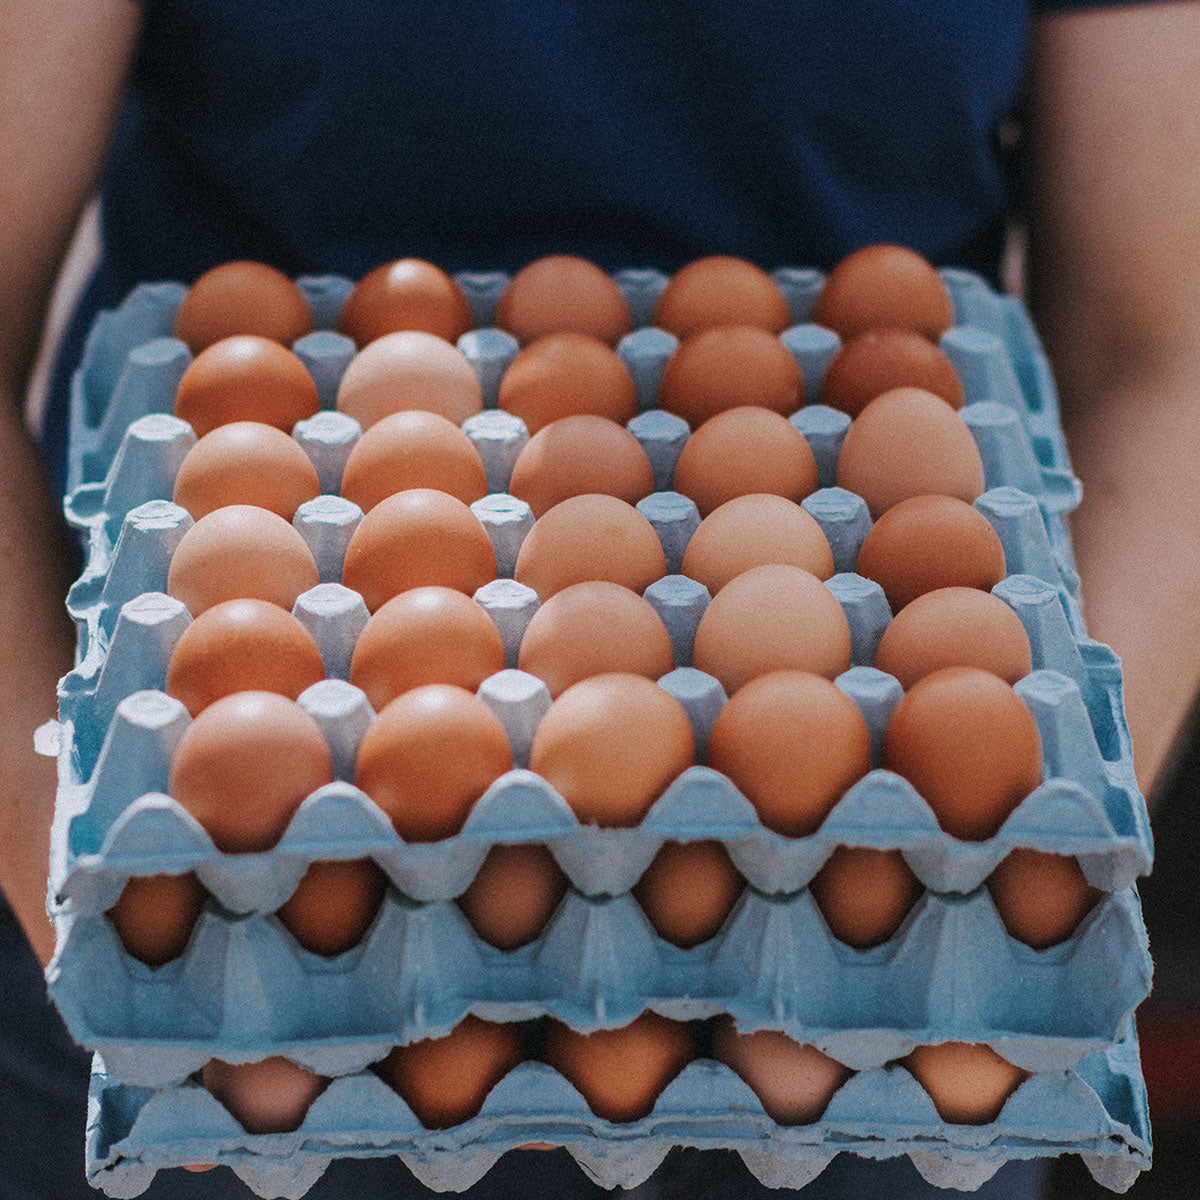 Free Range - Medium Fresh Eggs (x6)